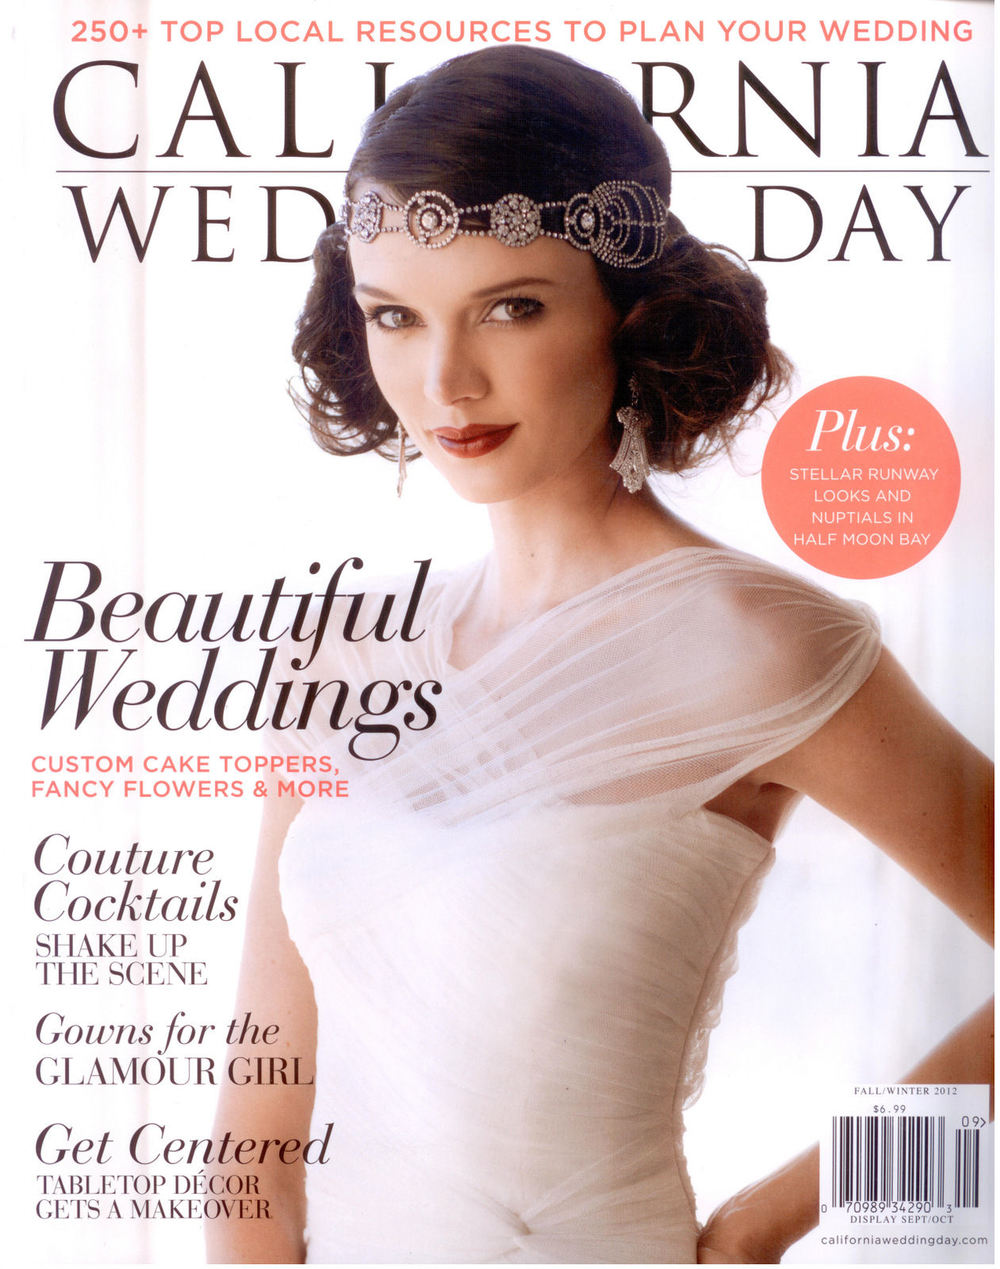 California Wedding Day cover.jpg